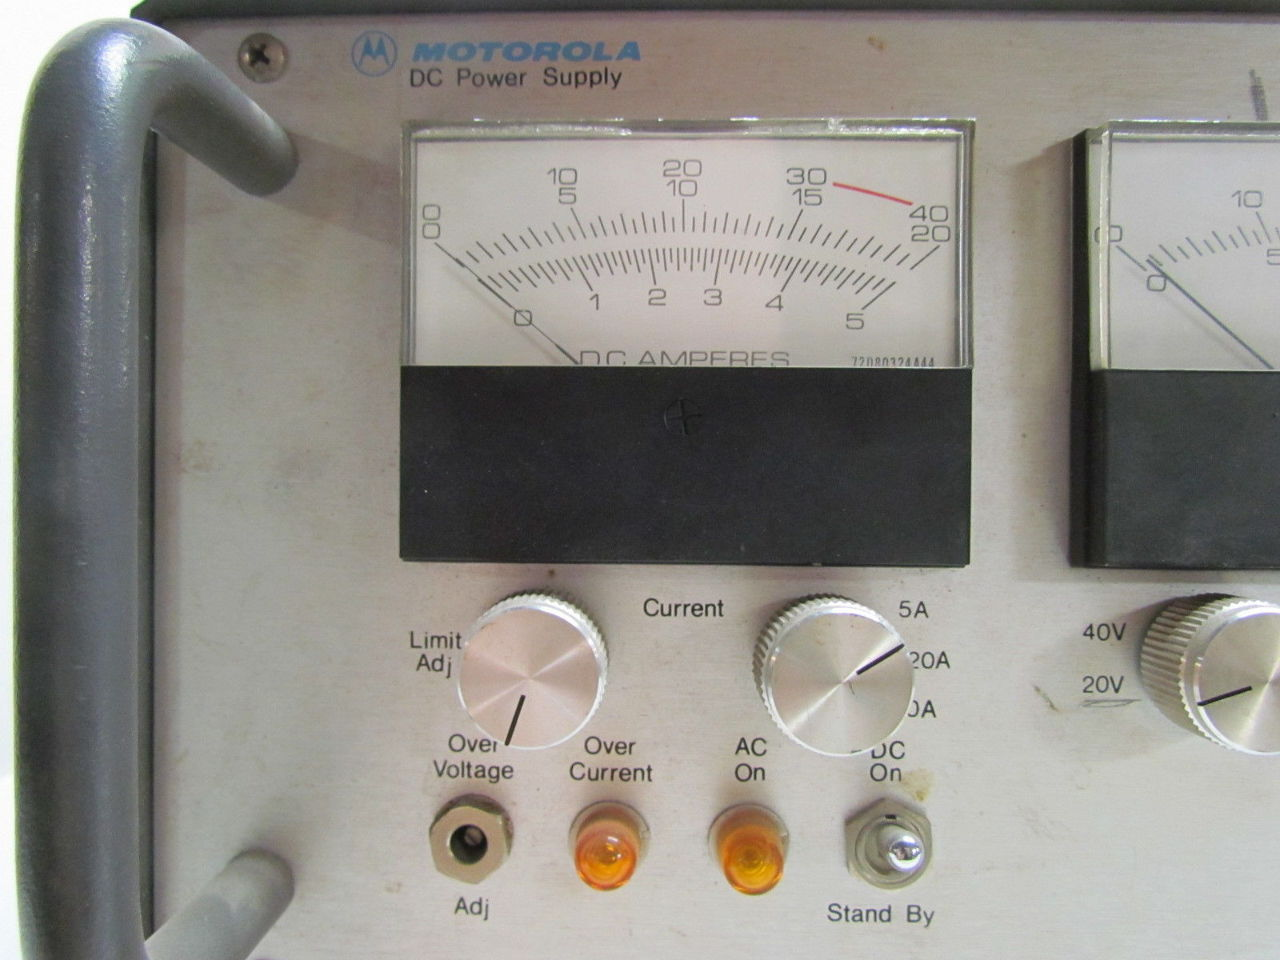 5 Volt 20 Amp Supply Related Keywords Suggestions 5v Power 20a Single Output Ps1100wsf5 Motorola R1011aa Dual Analog Meter Dc 40